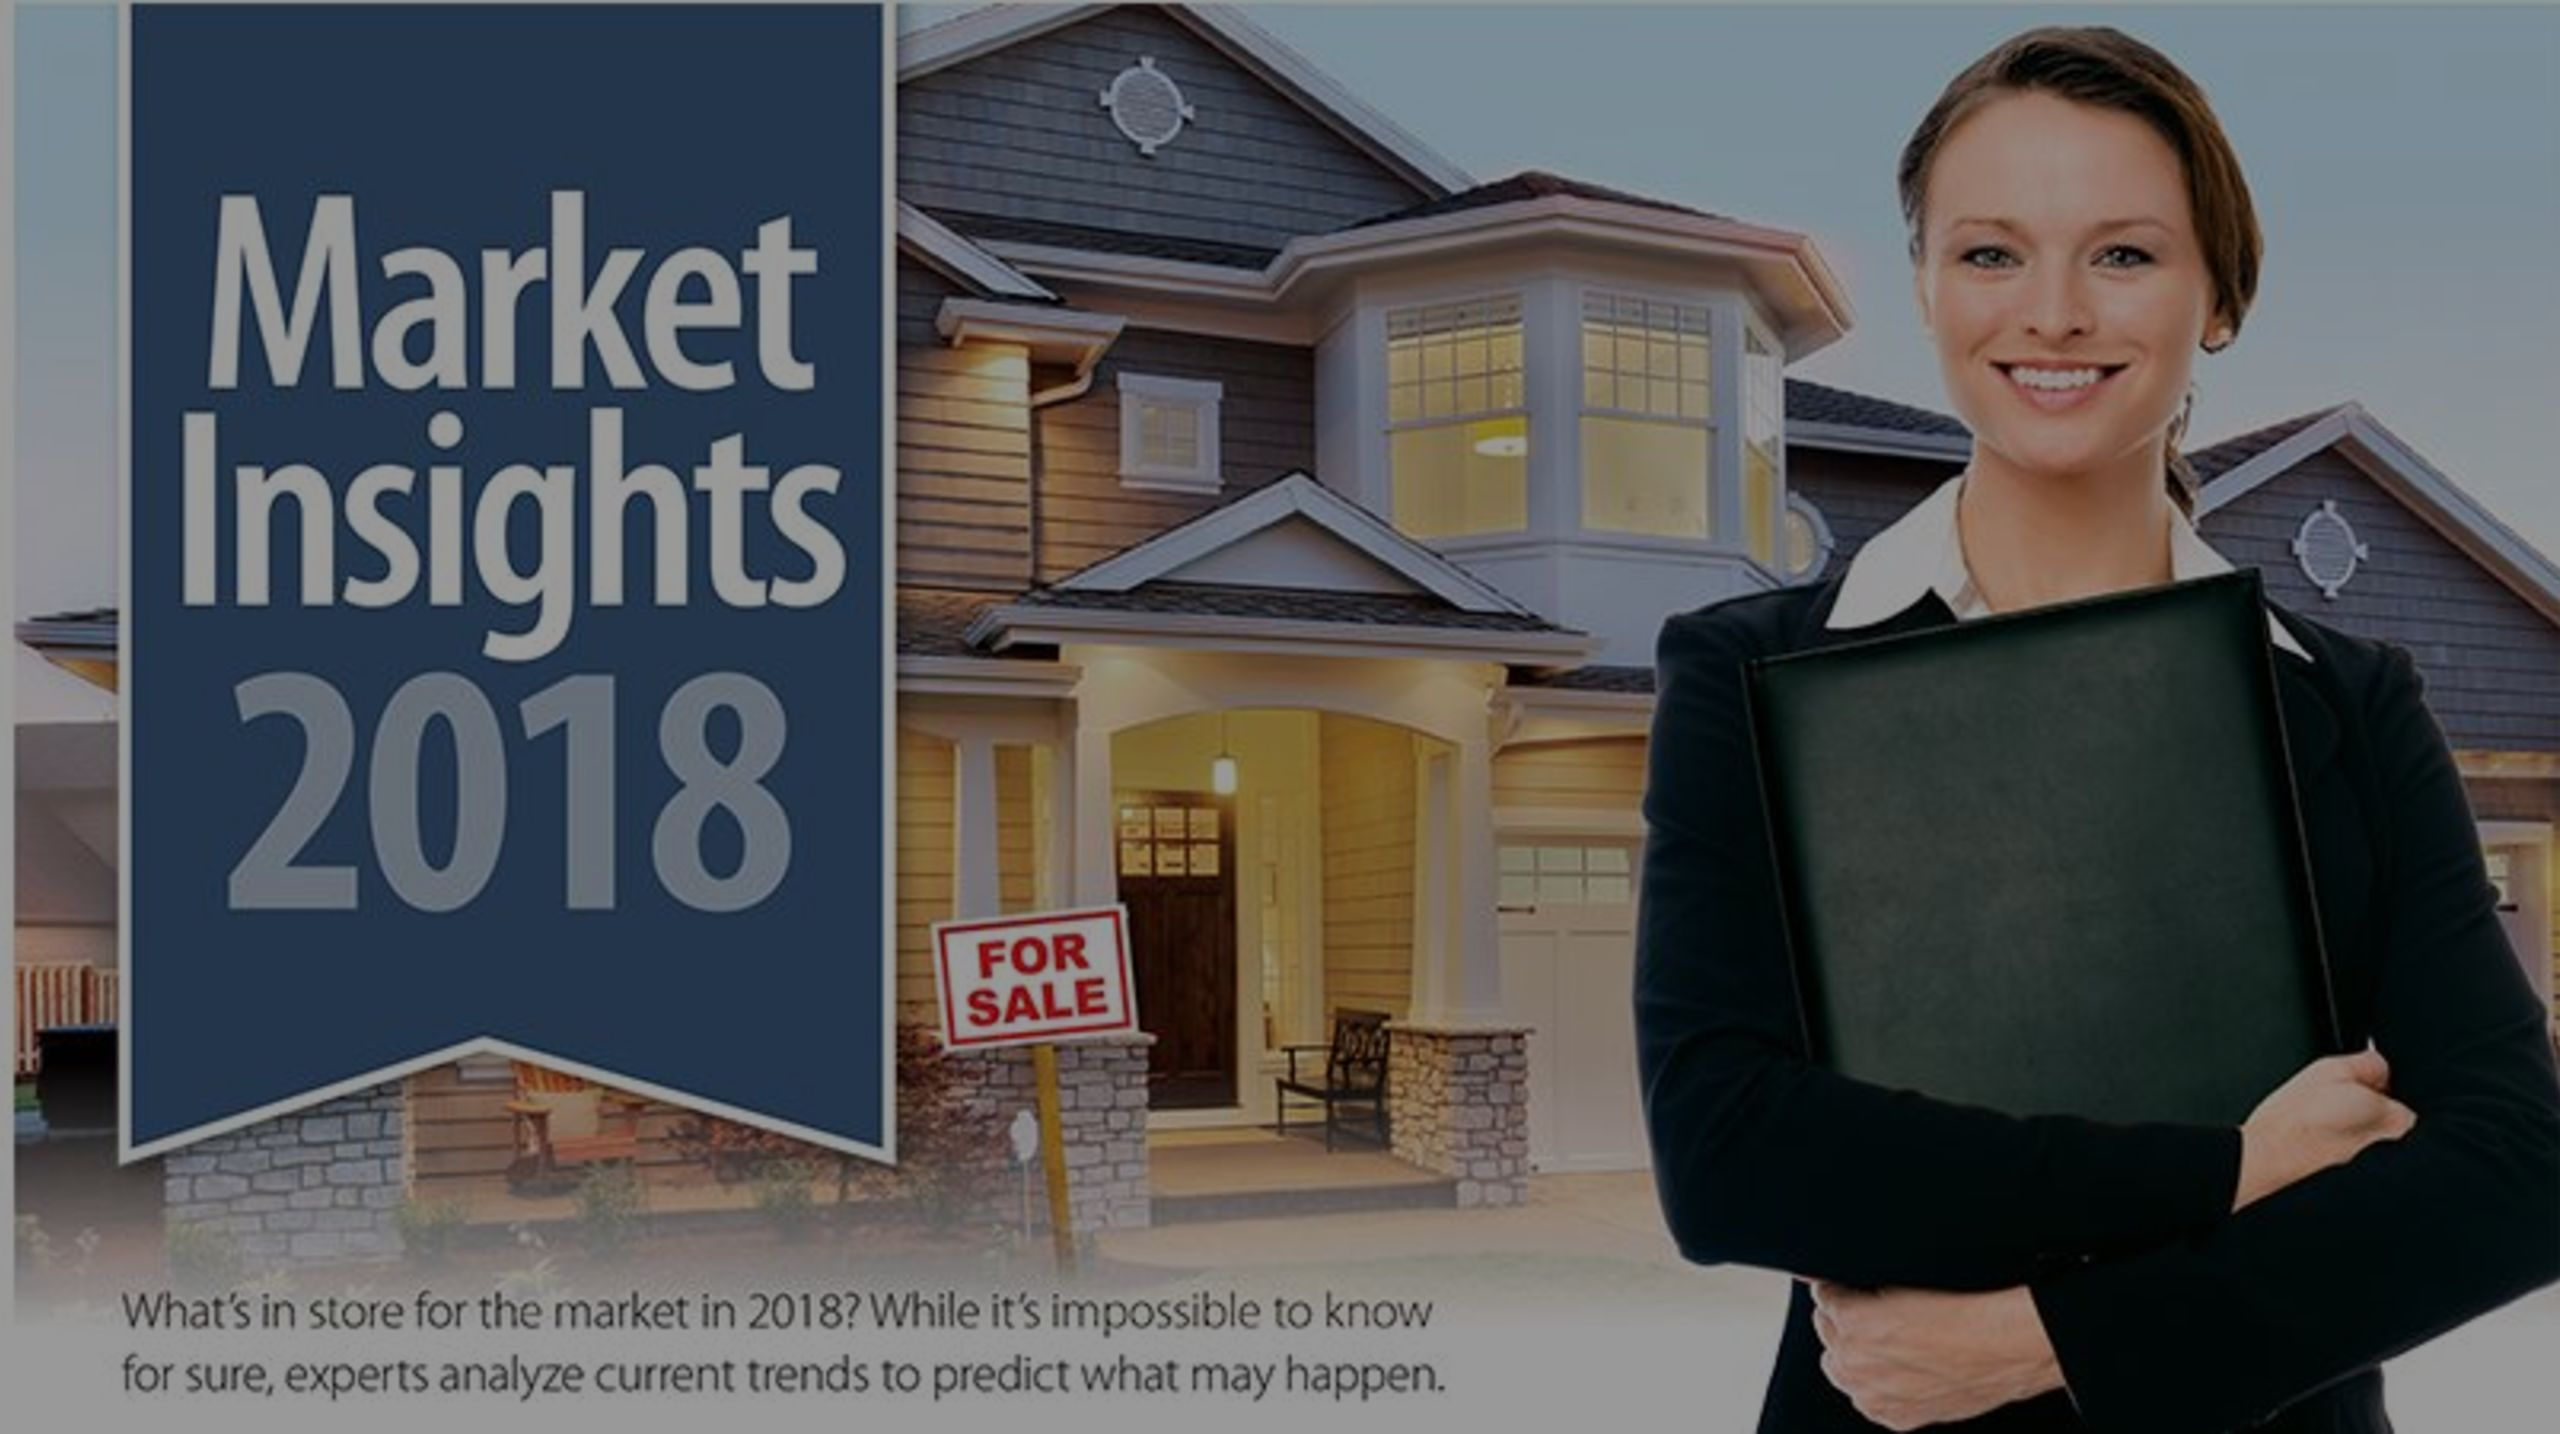 2018's Housing Market Insight